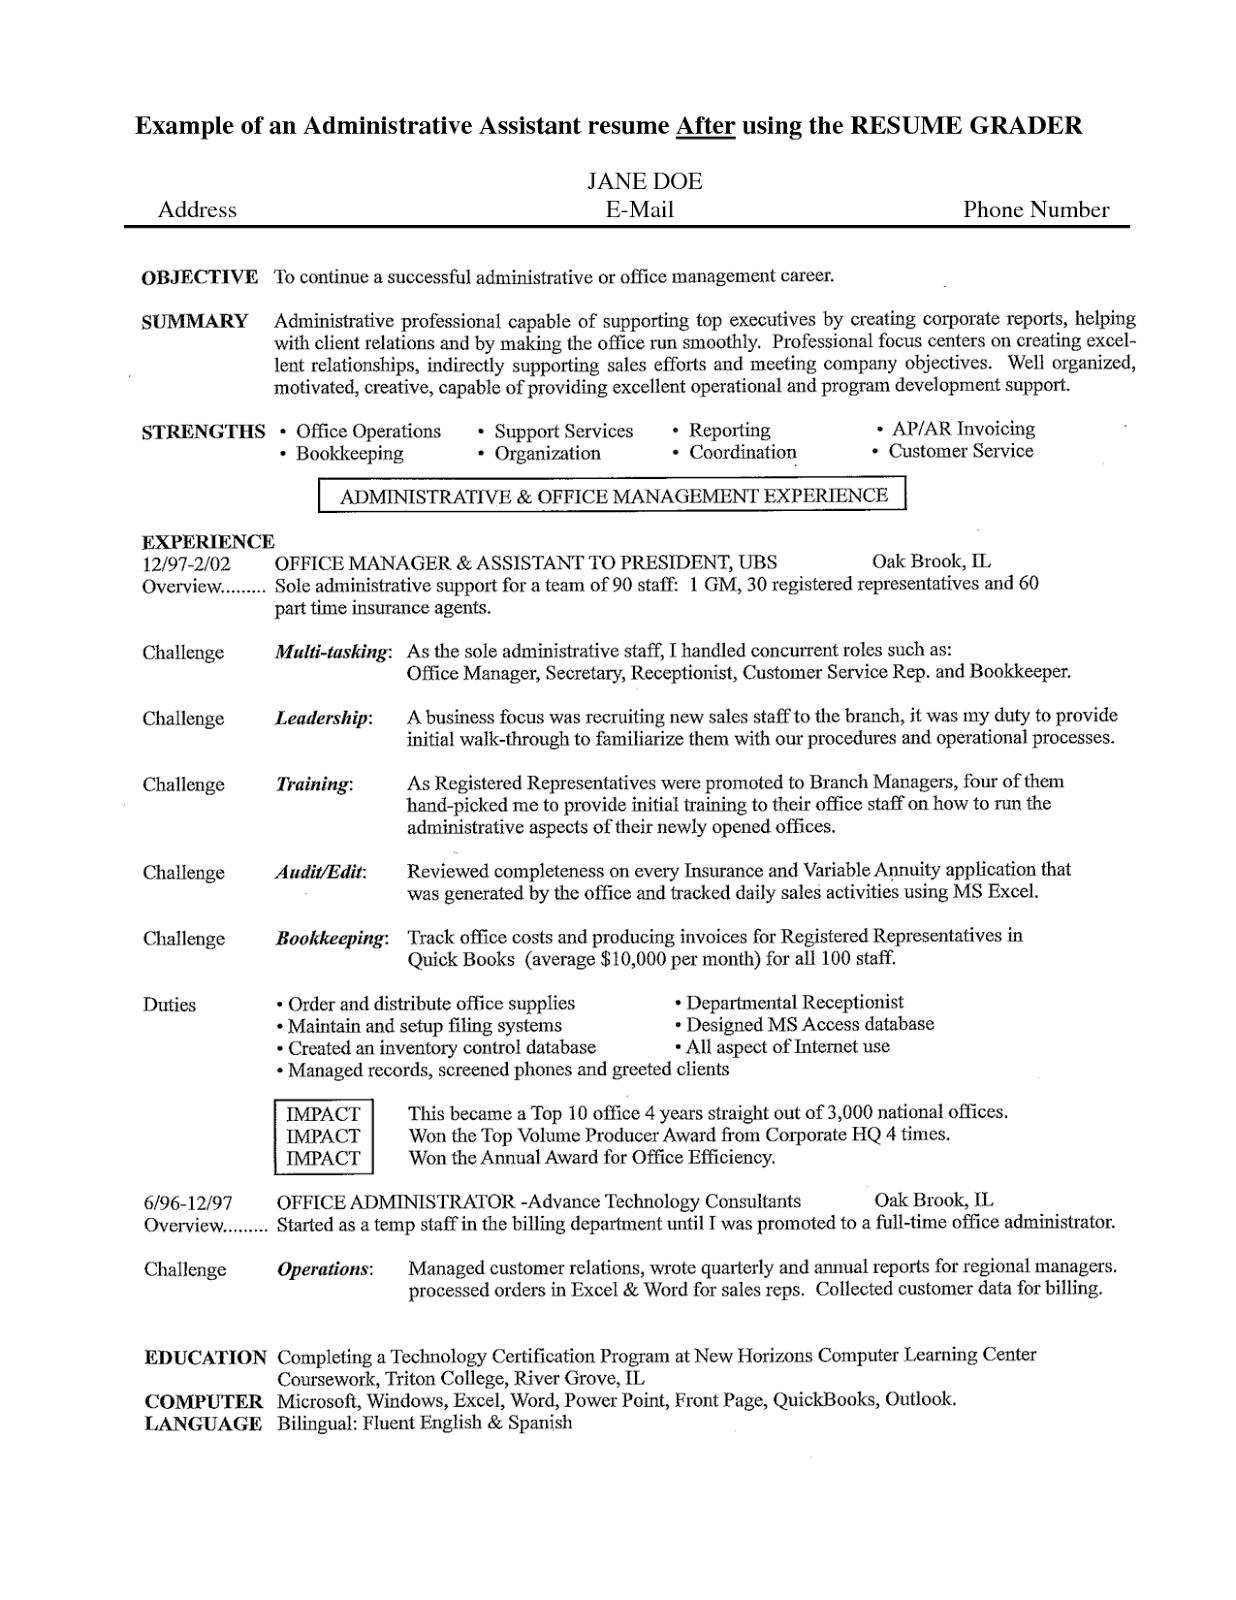 Resume Goal Statement Examples | Resume CV Cover Letter